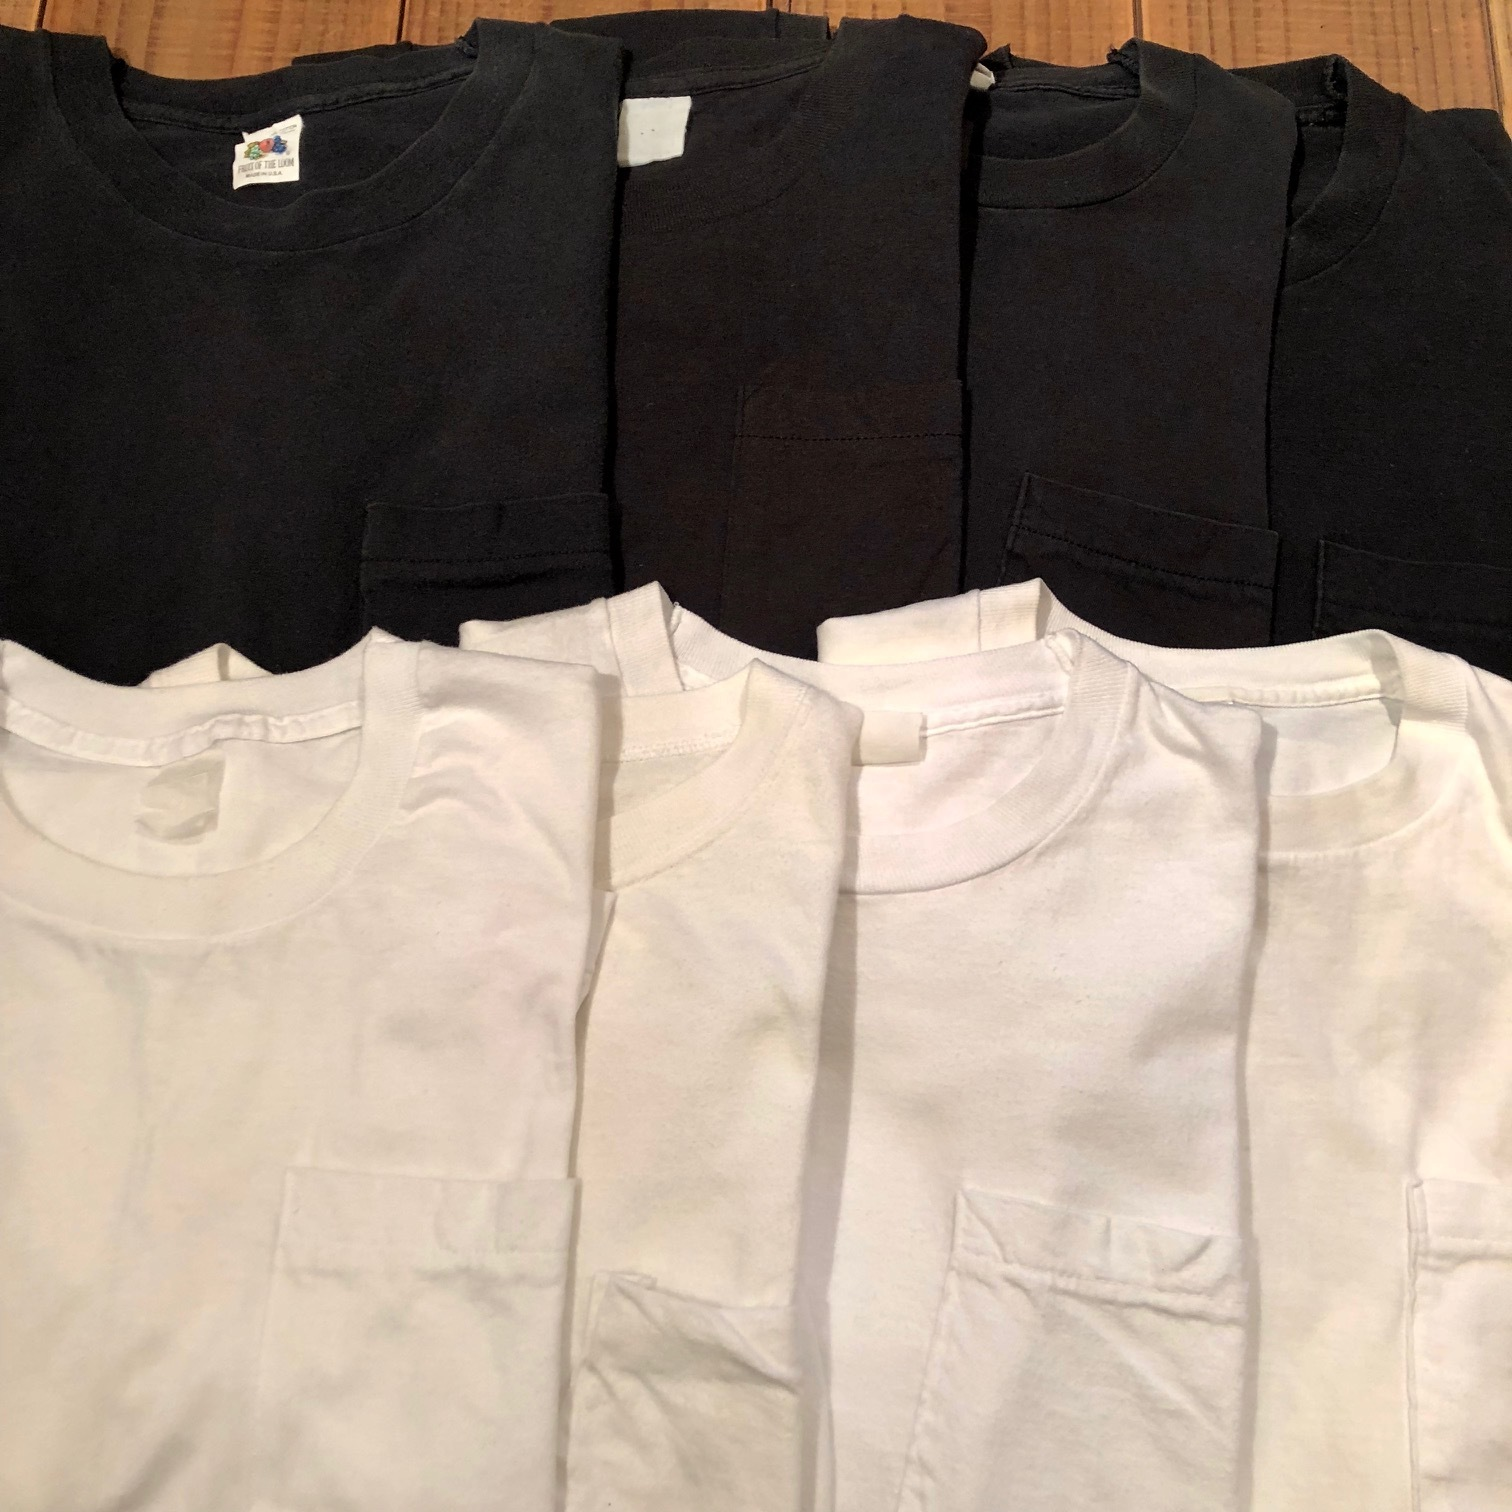 "1980s "" FRUIT OF THE LOOM \"" 100% cotton - BLACK - VINTAGE POCKET Tee SHIRTS × 4P - WHITE - × 4P ._d0172088_17471459.jpg"